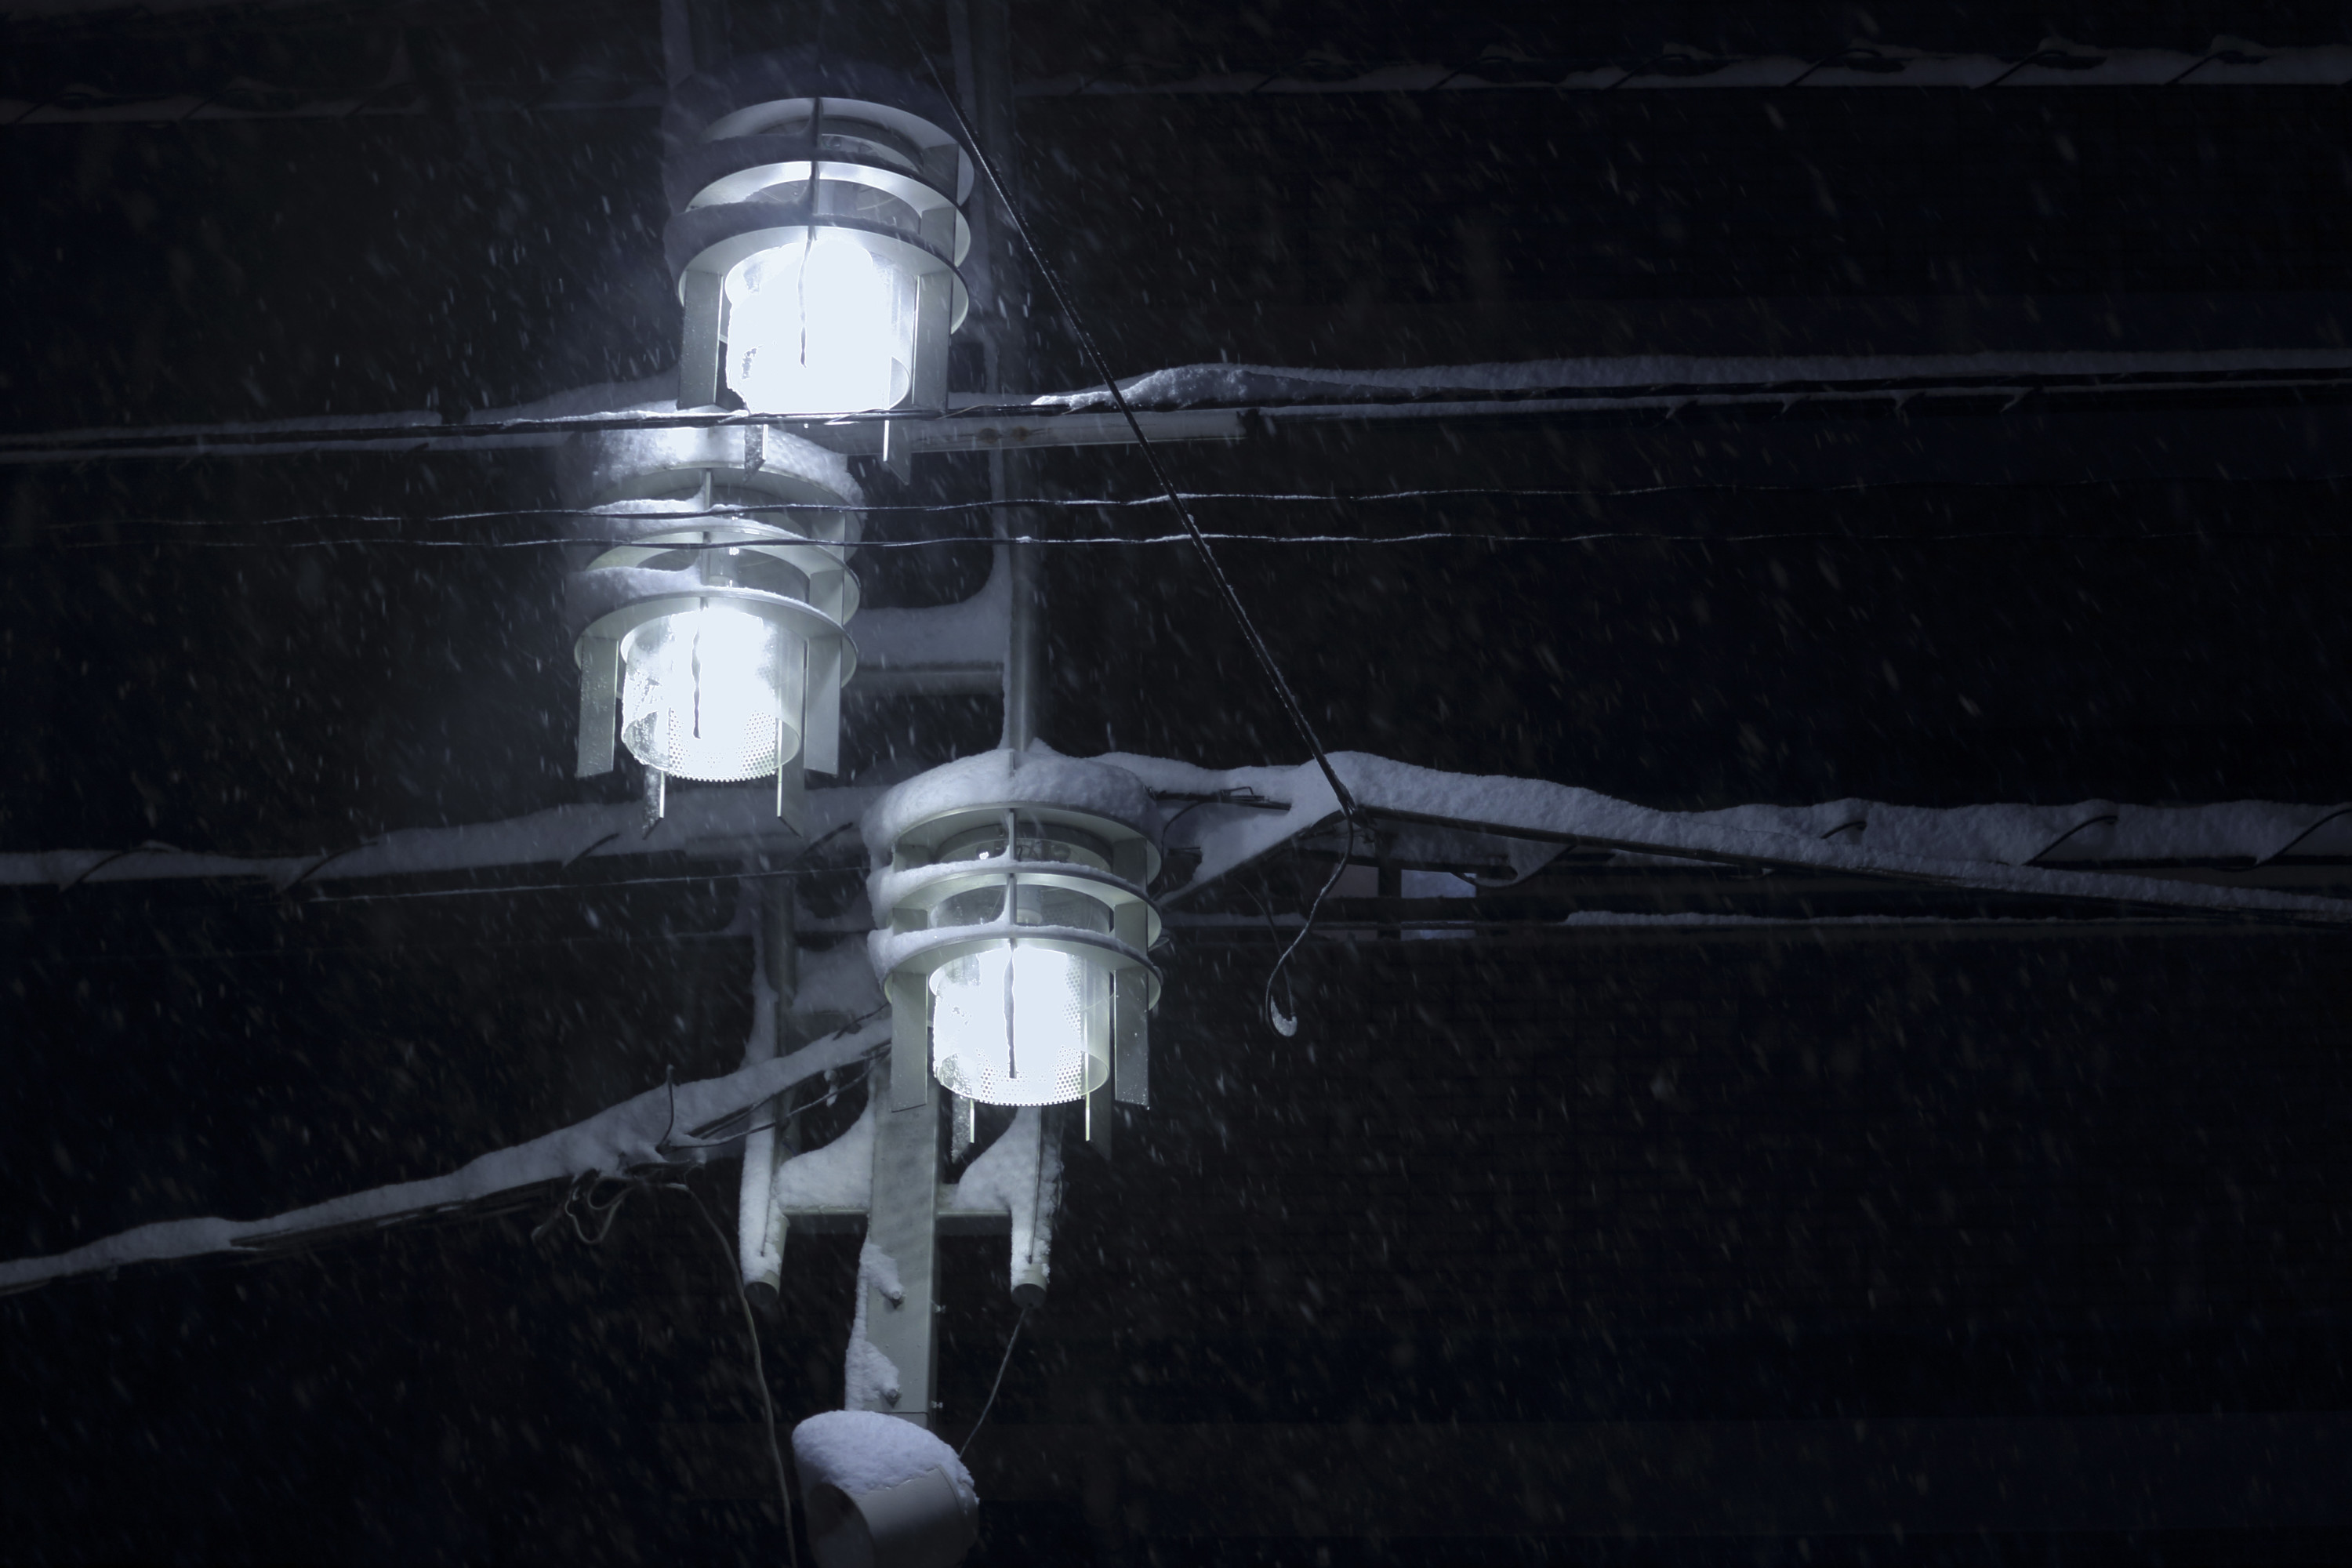 lighting-in-the-snowstorm-001